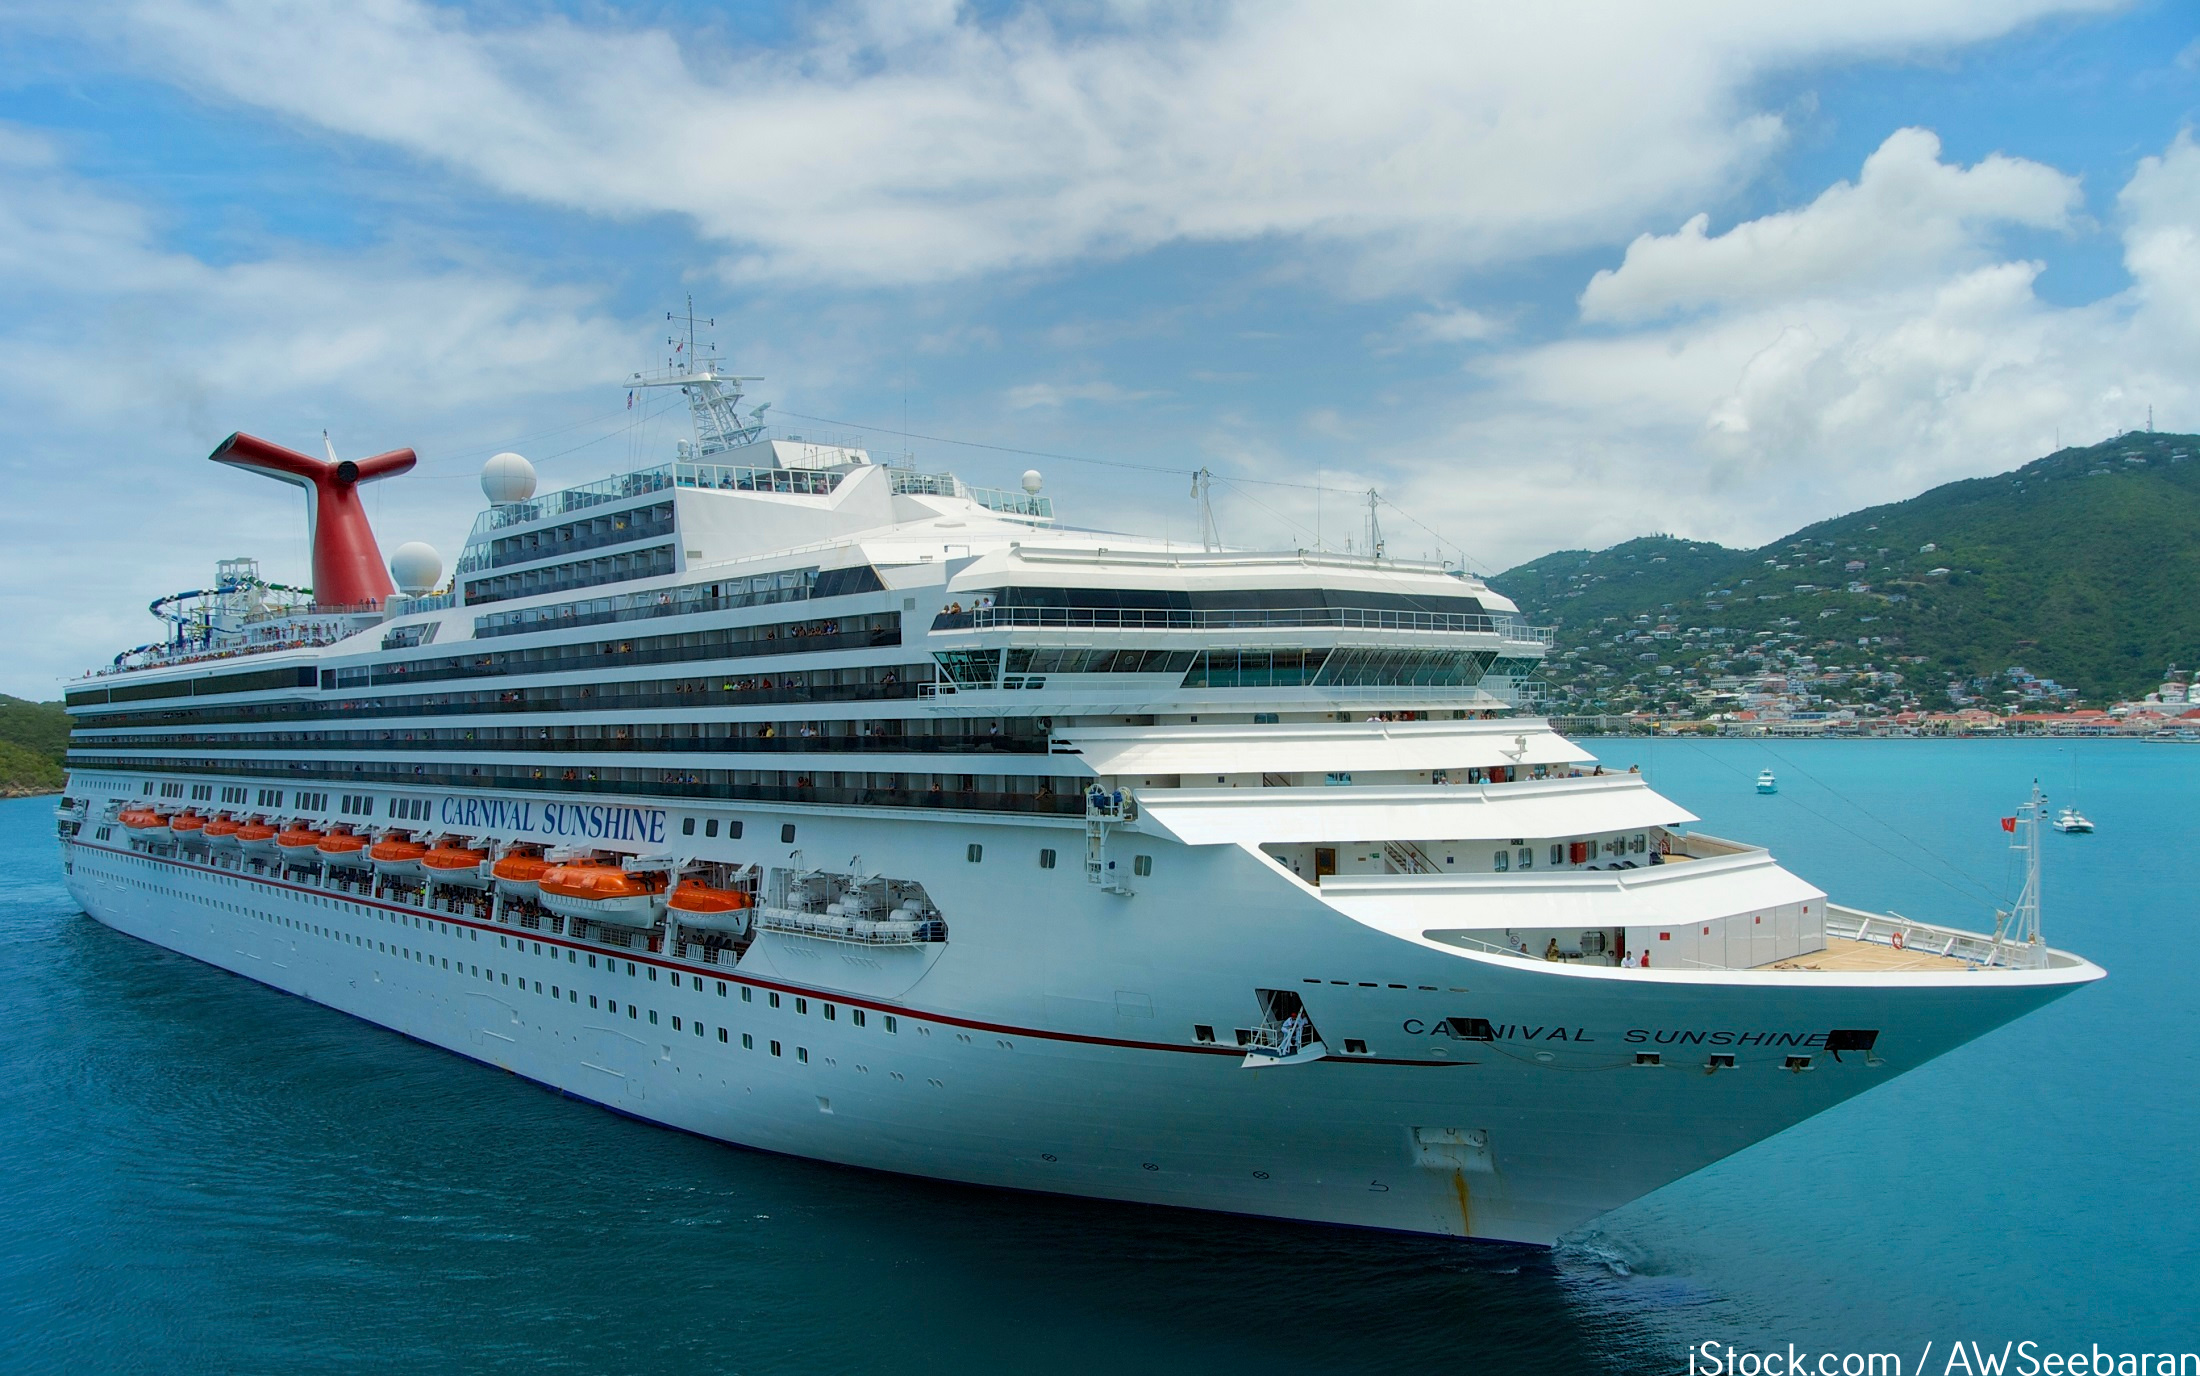 carnival cruise lines case essay example Web site: http:// wwwscribdcom/doc/26363095/case-study-carnival-cruise-lines-inc princess is owned by carnival so norwegian or disney may be a better example.